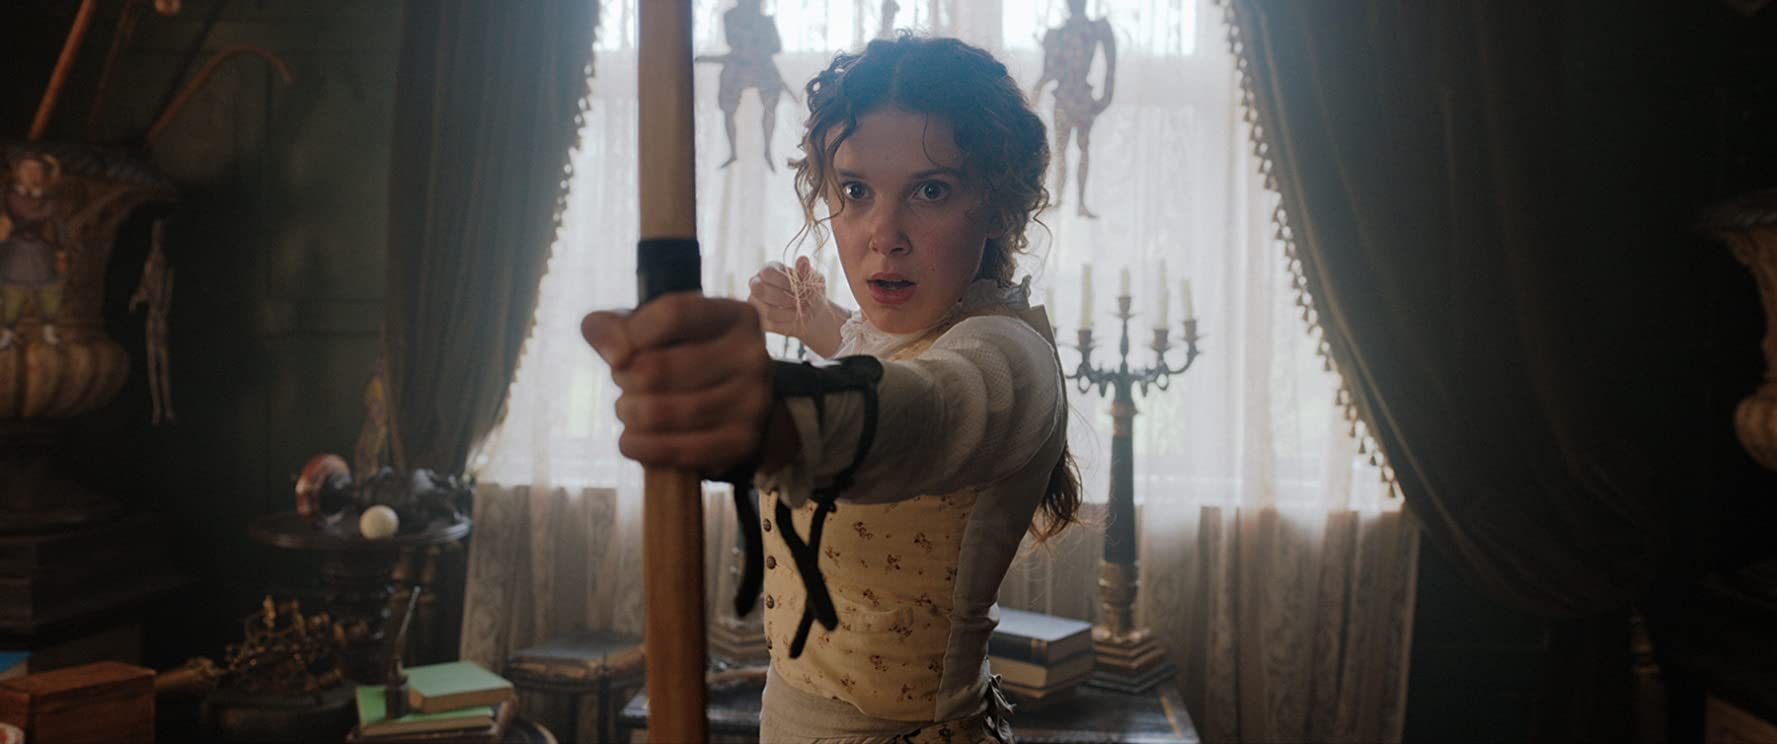 Millie Bobby Brown in Enola Holmes (2020)